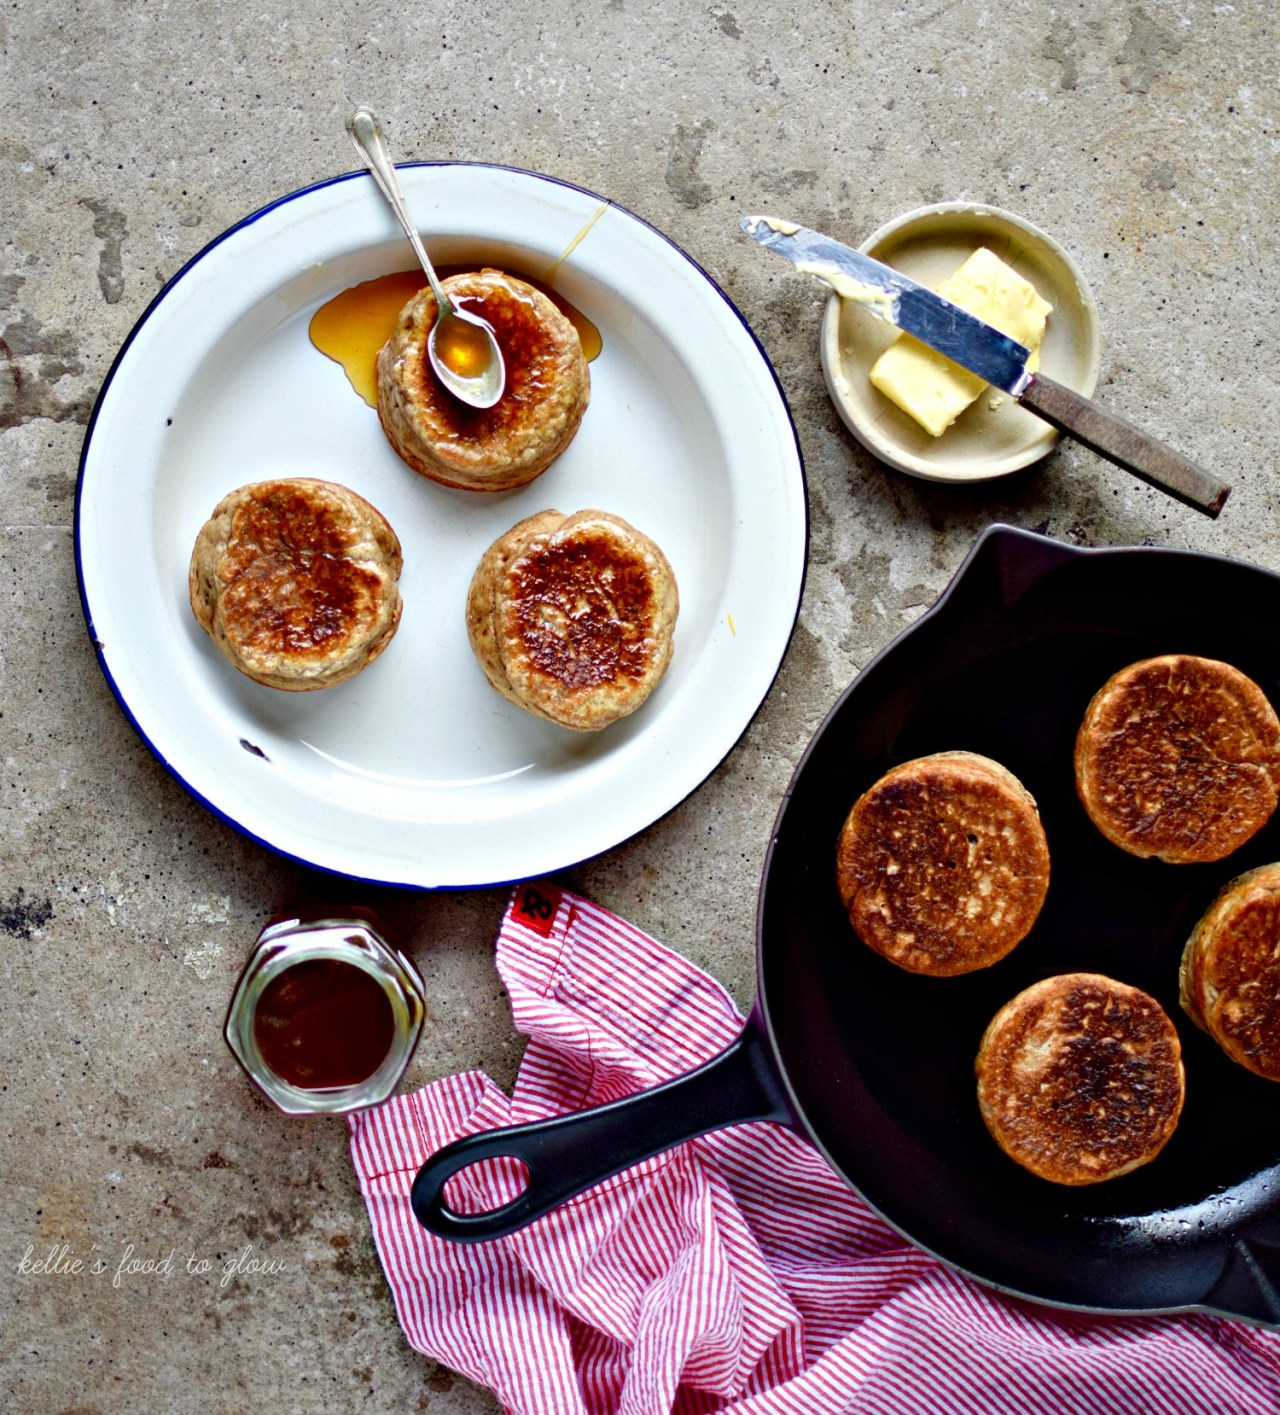 Who can resist a pillowy, chewy homemade crumpet? Especially if it's made healthier with wholegrain rye flour and a touch of Manuka honey? A perfect breakfast or anytime treat.